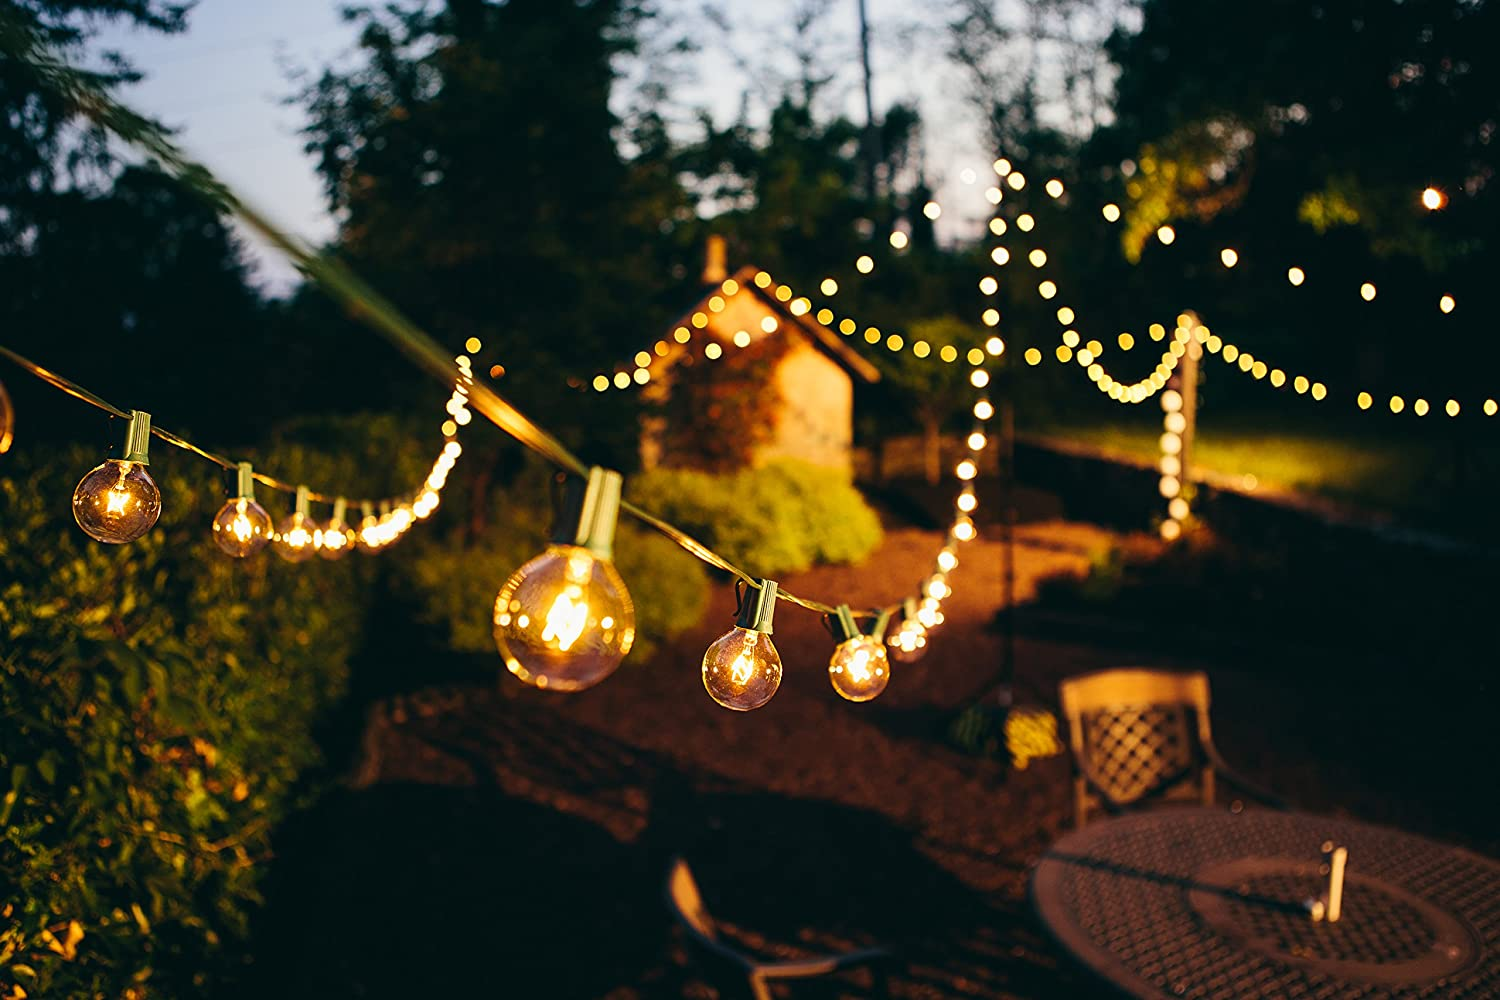 Amazon 25 foot g50 patio globe string lights with 2 inch clear amazon 25 foot g50 patio globe string lights with 2 inch clear bulbs for outdoor string lighting green wire home kitchen audiocablefo